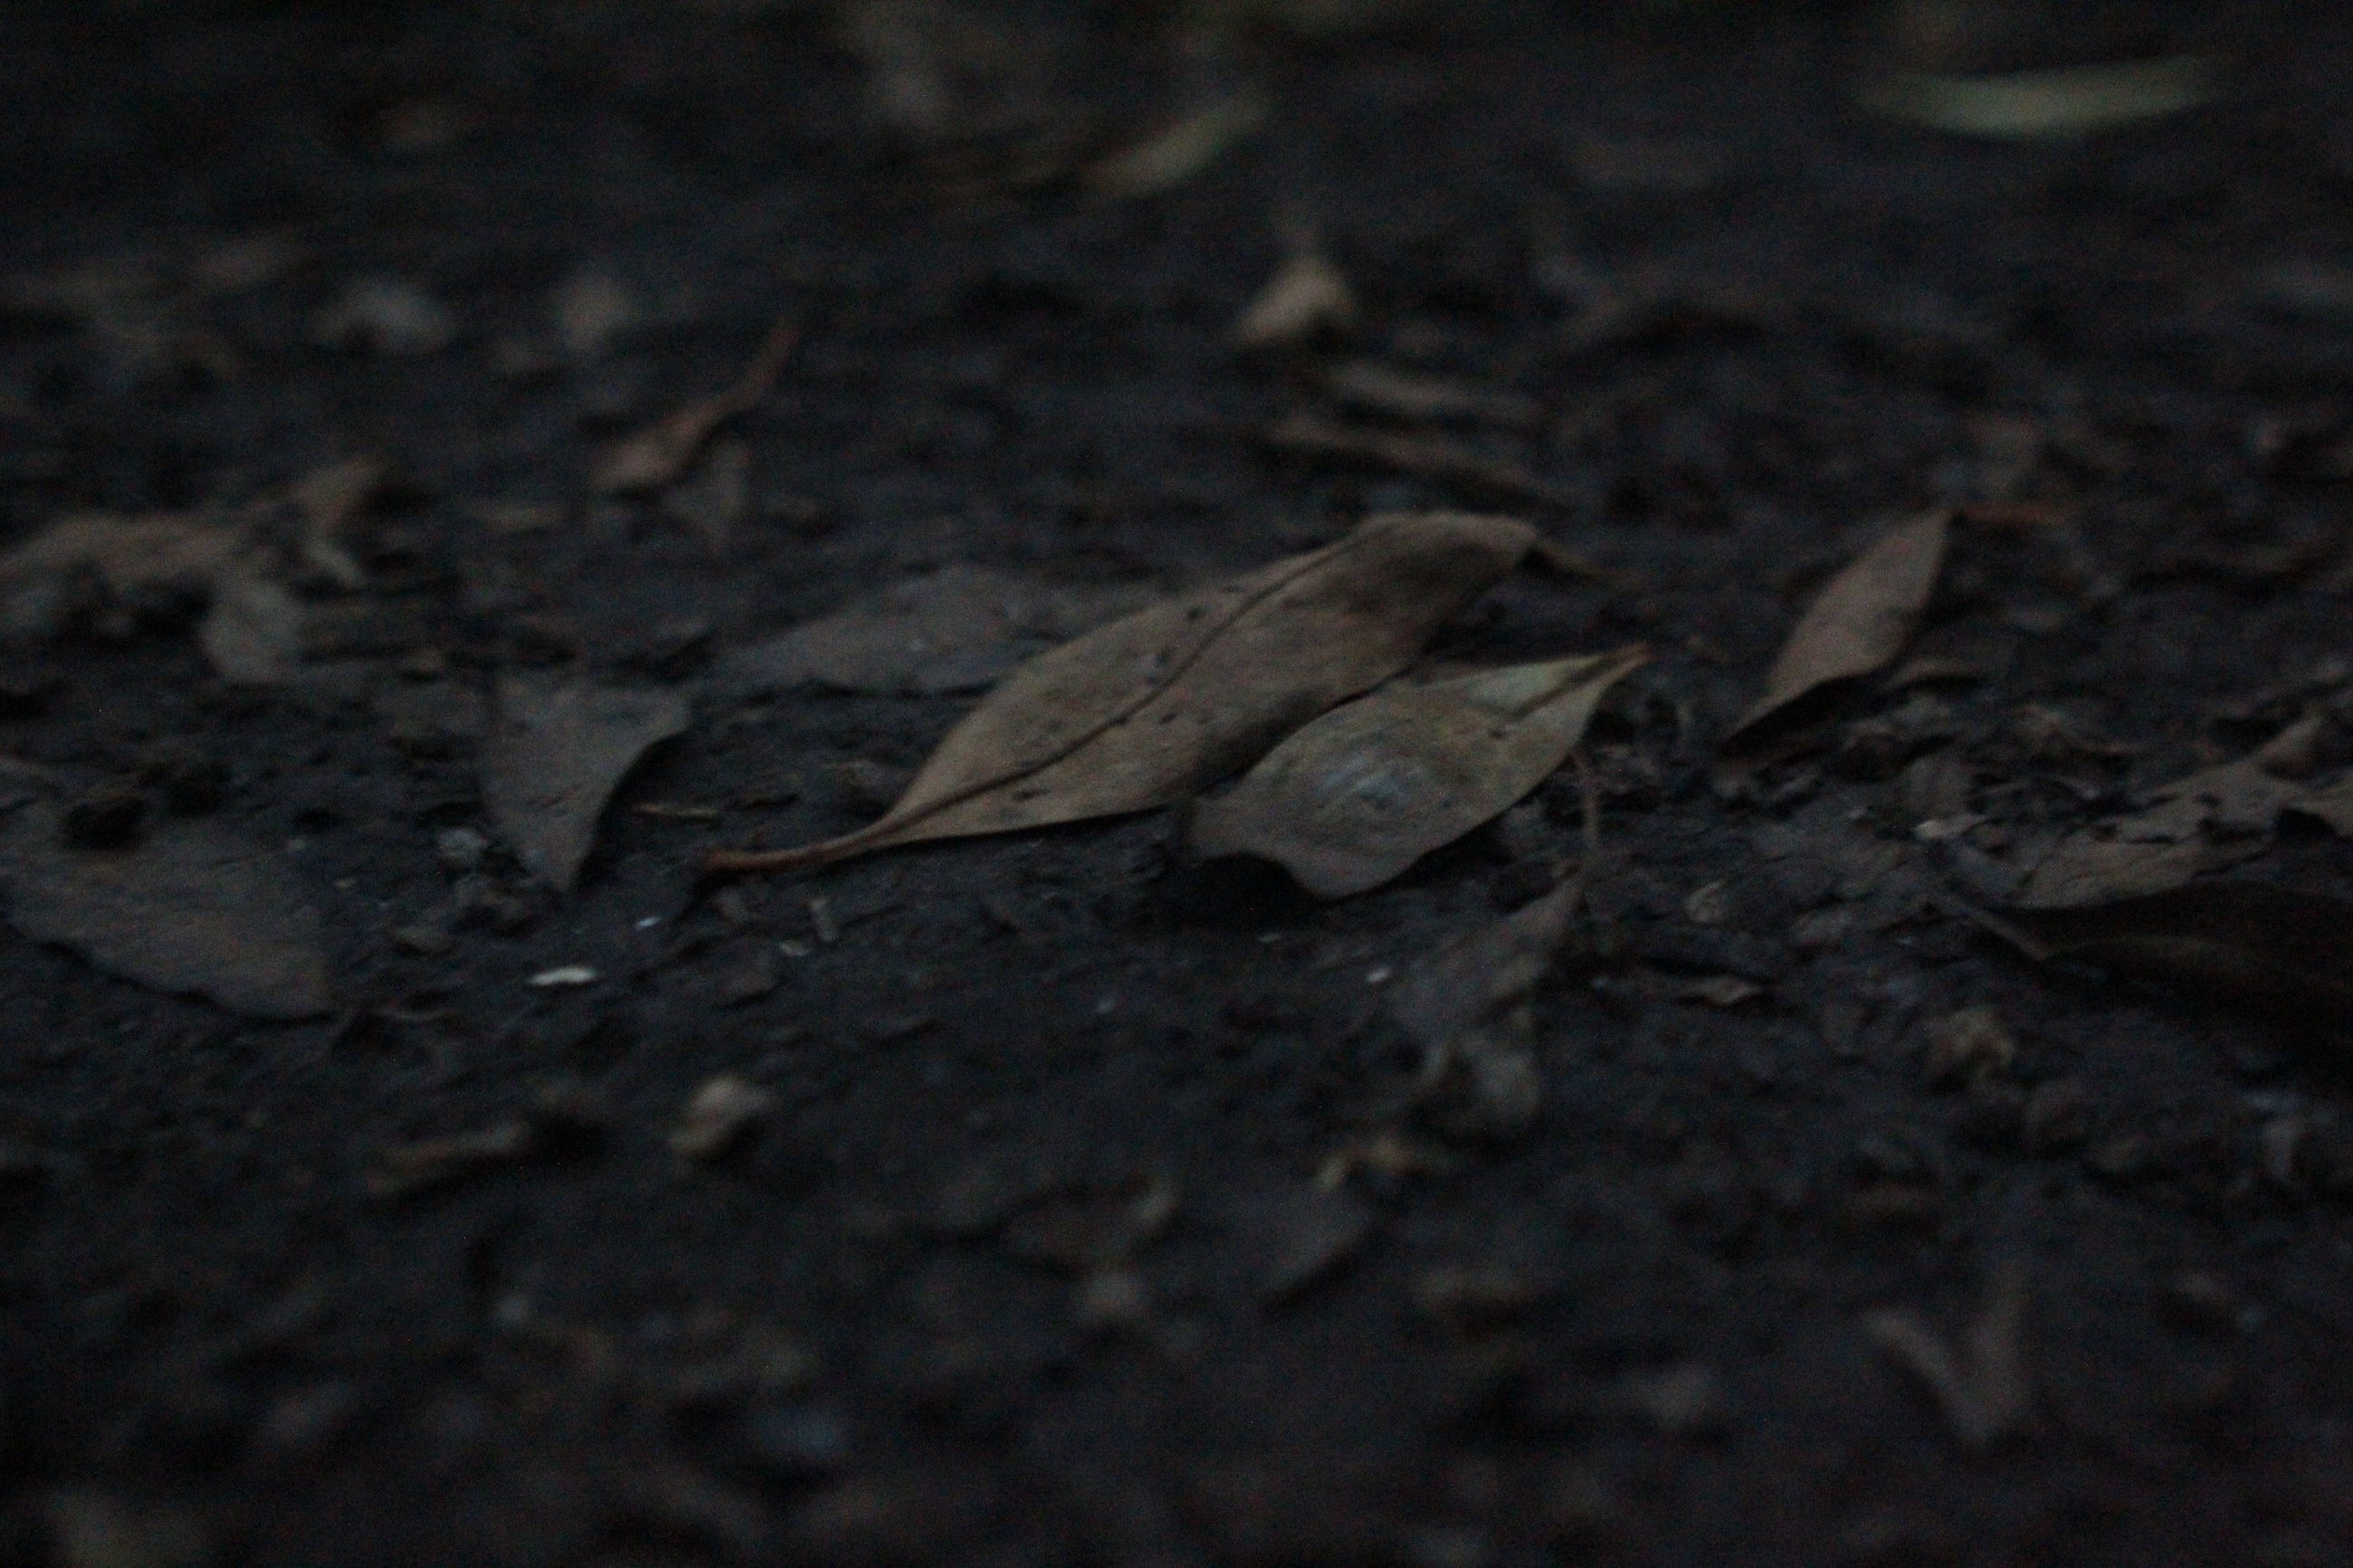 leaf, close-up, no people, animal themes, animals in the wild, outdoors, nature, night, fragility